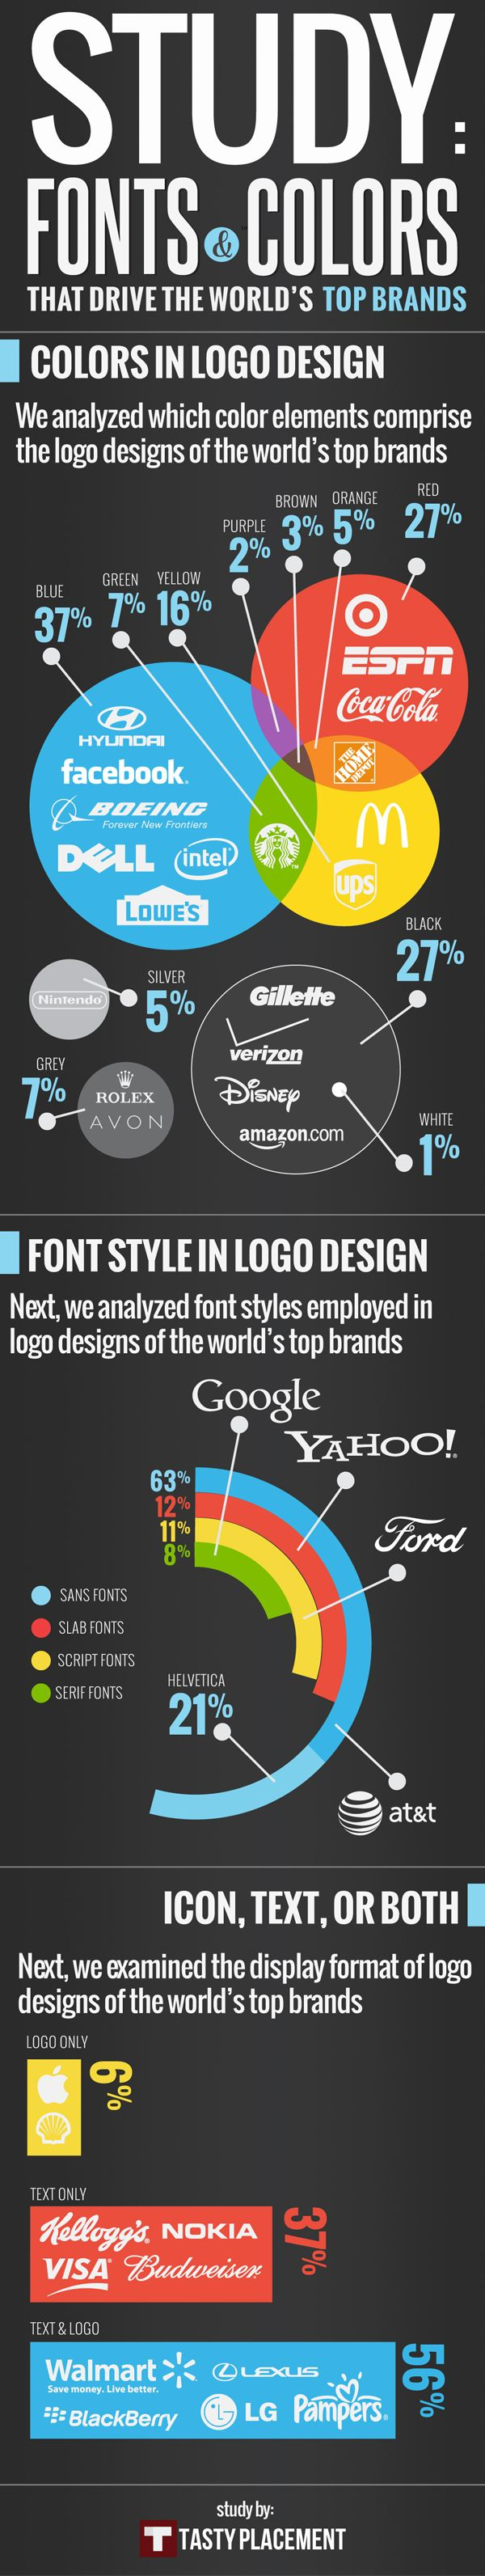 #Fonts and #Colors that Drive the World's Top Brands #Infographic by Tasty Placement